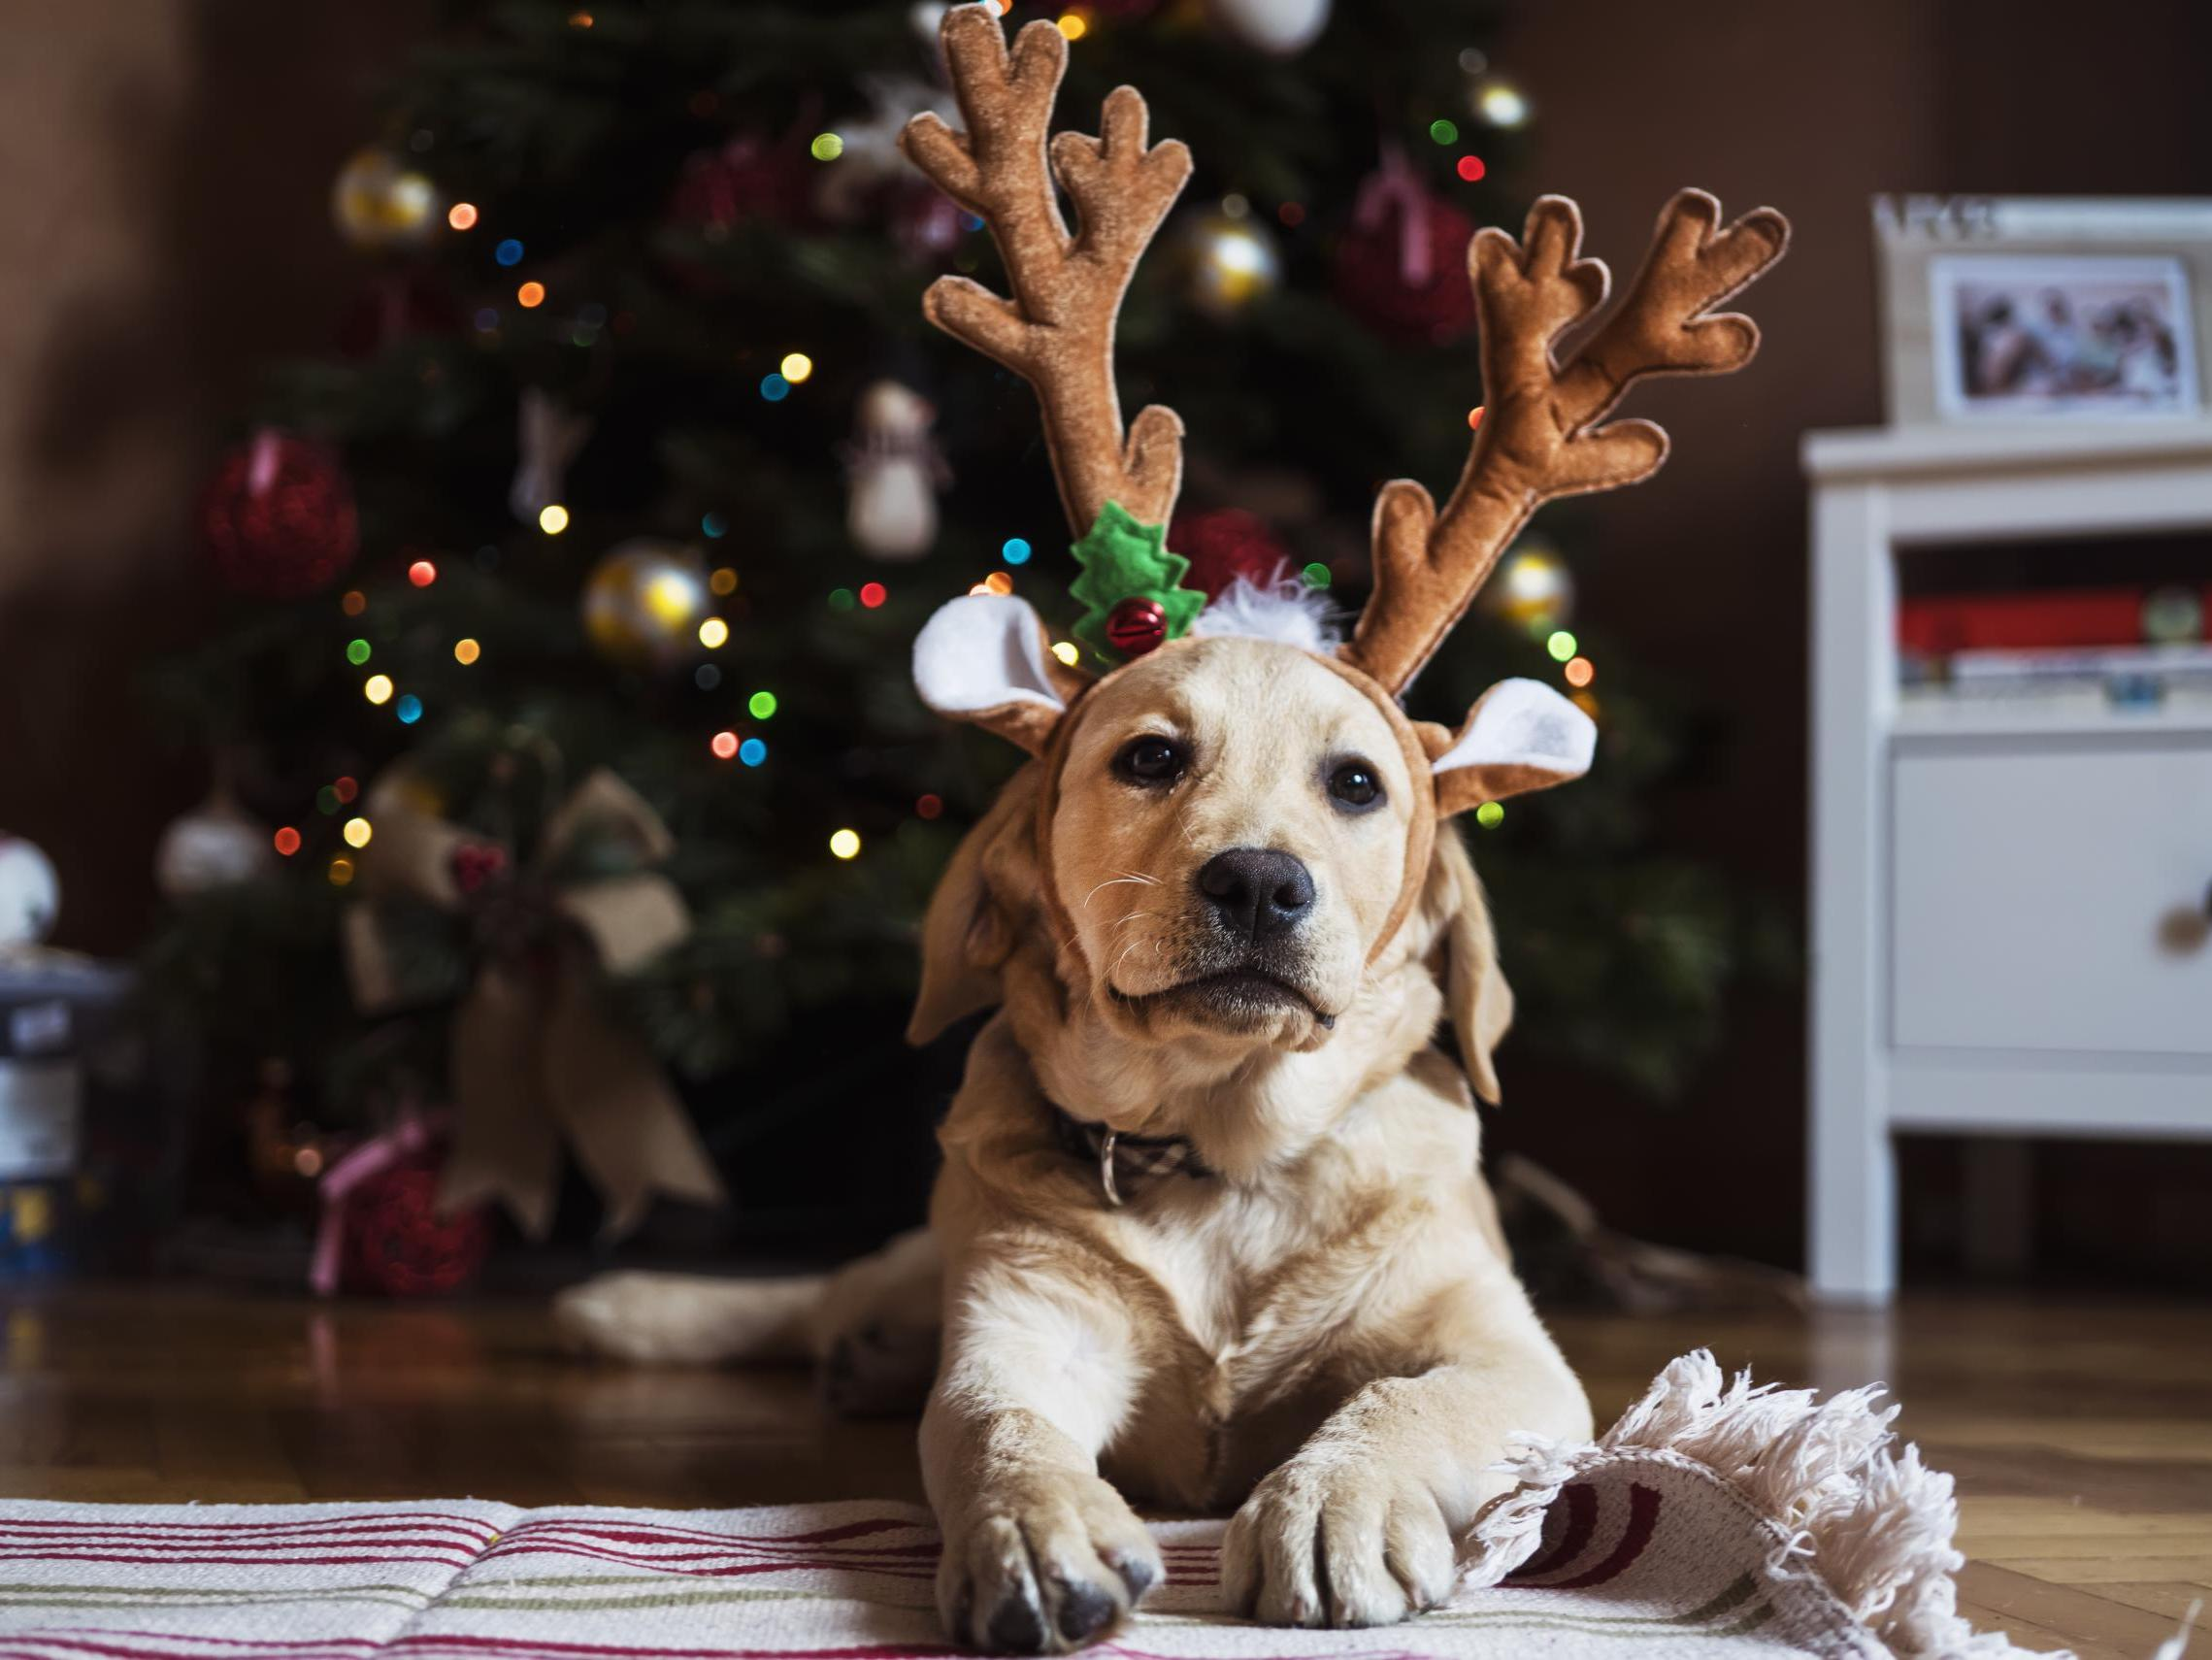 Pet owners warned to keep animals away from chocolate at Christmas